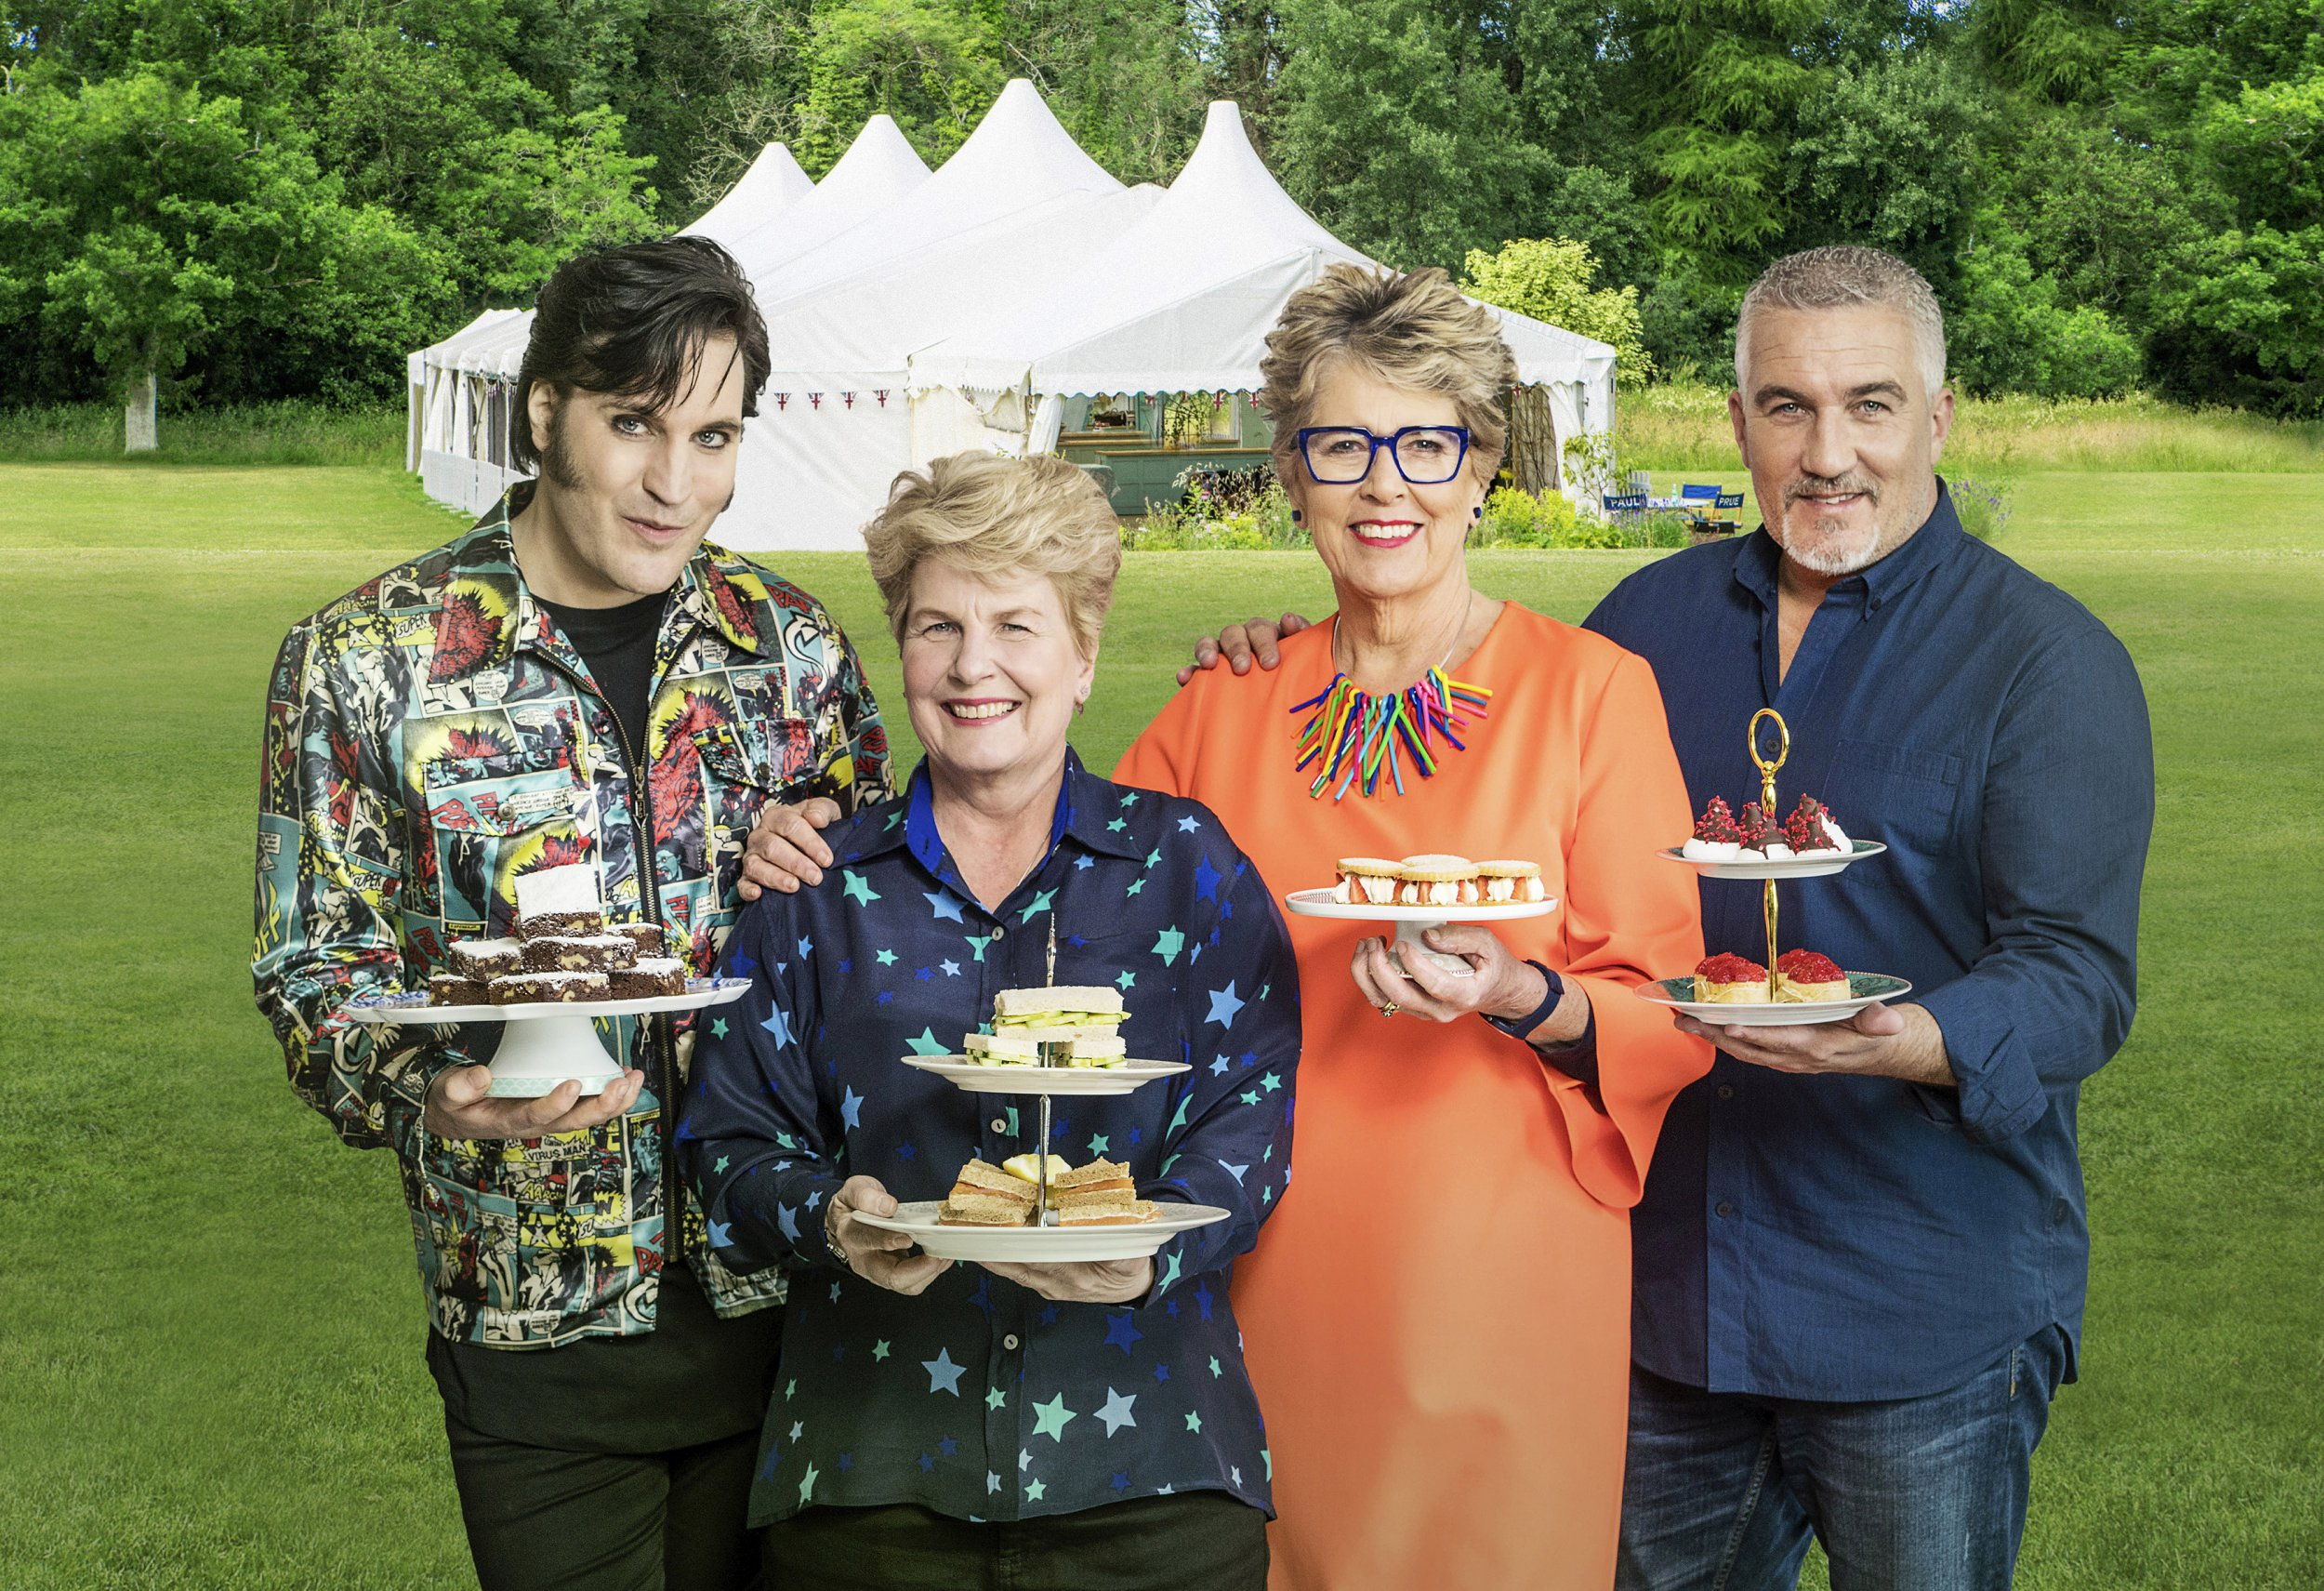 The Great British Bake Off (2018).Talent Specials: - Presenters: Noel fielding, Sandi Toksvig and Judges Paul Hollywood, Prue Leith..STRICT EMBARGO OF 00:01 HRS TUESDAY 21 AUGUST 2018, UNLESS OTHERWISE STATED BELOW.